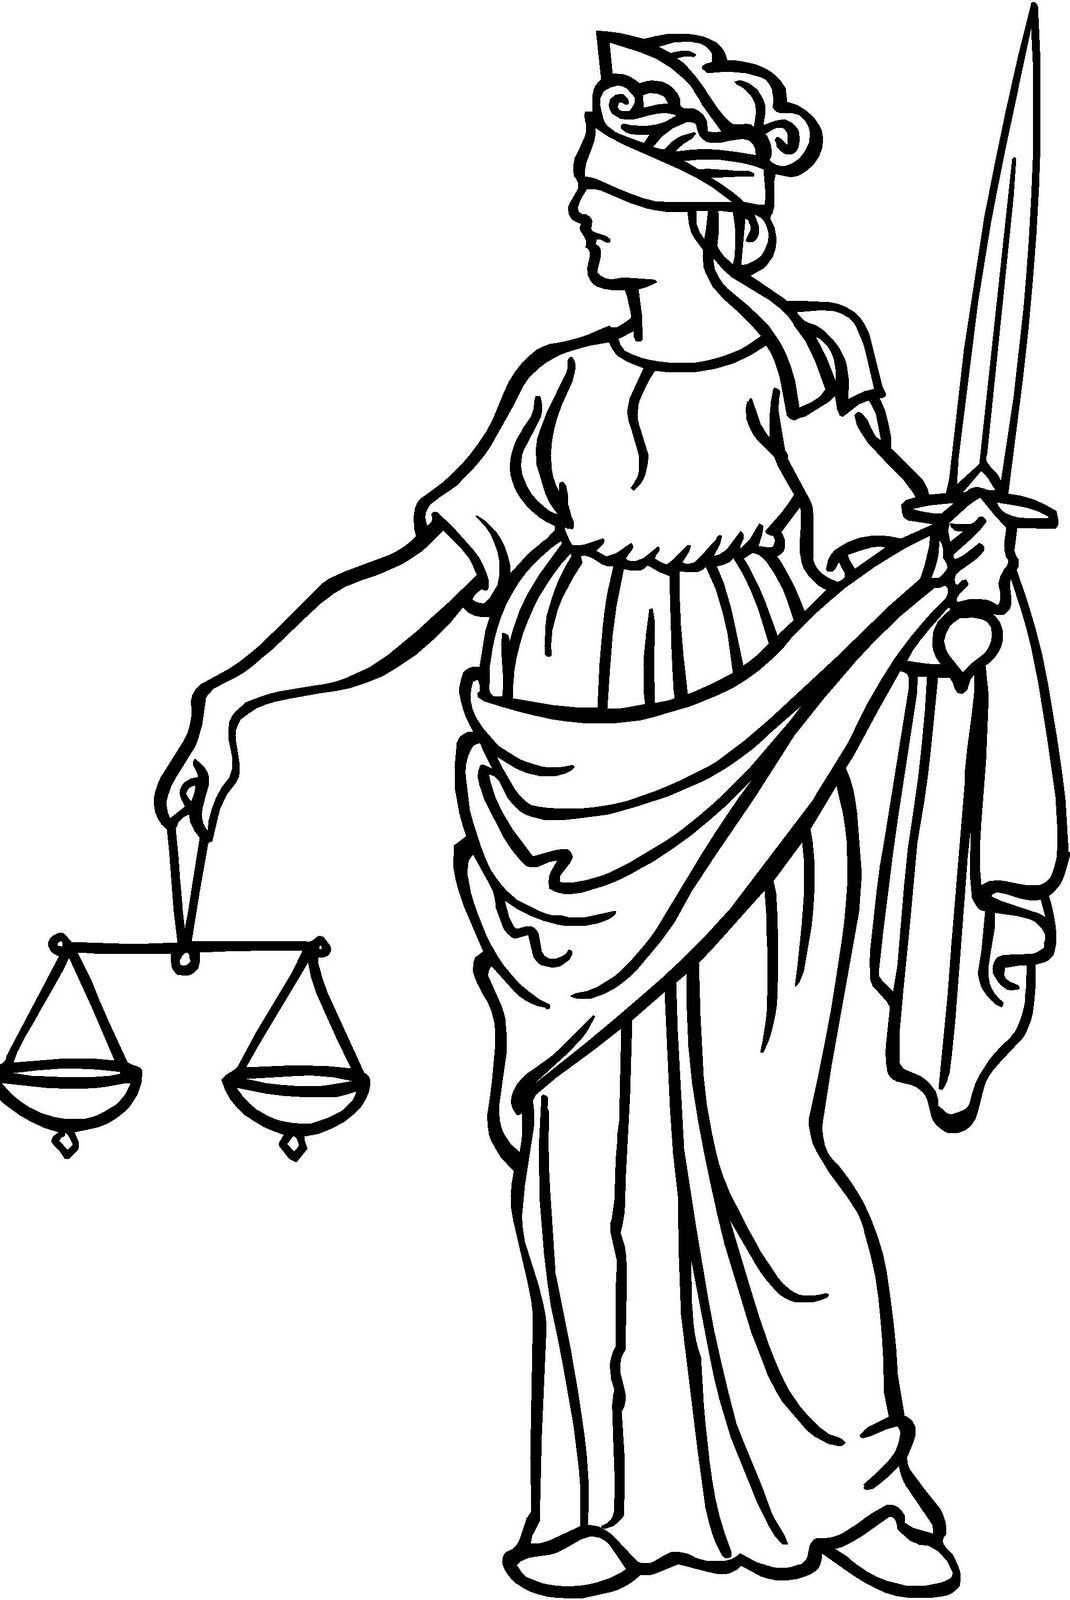 roman laws system of justice 5th grade history ancient rome Lawyer Resume Bar roman laws system of justice